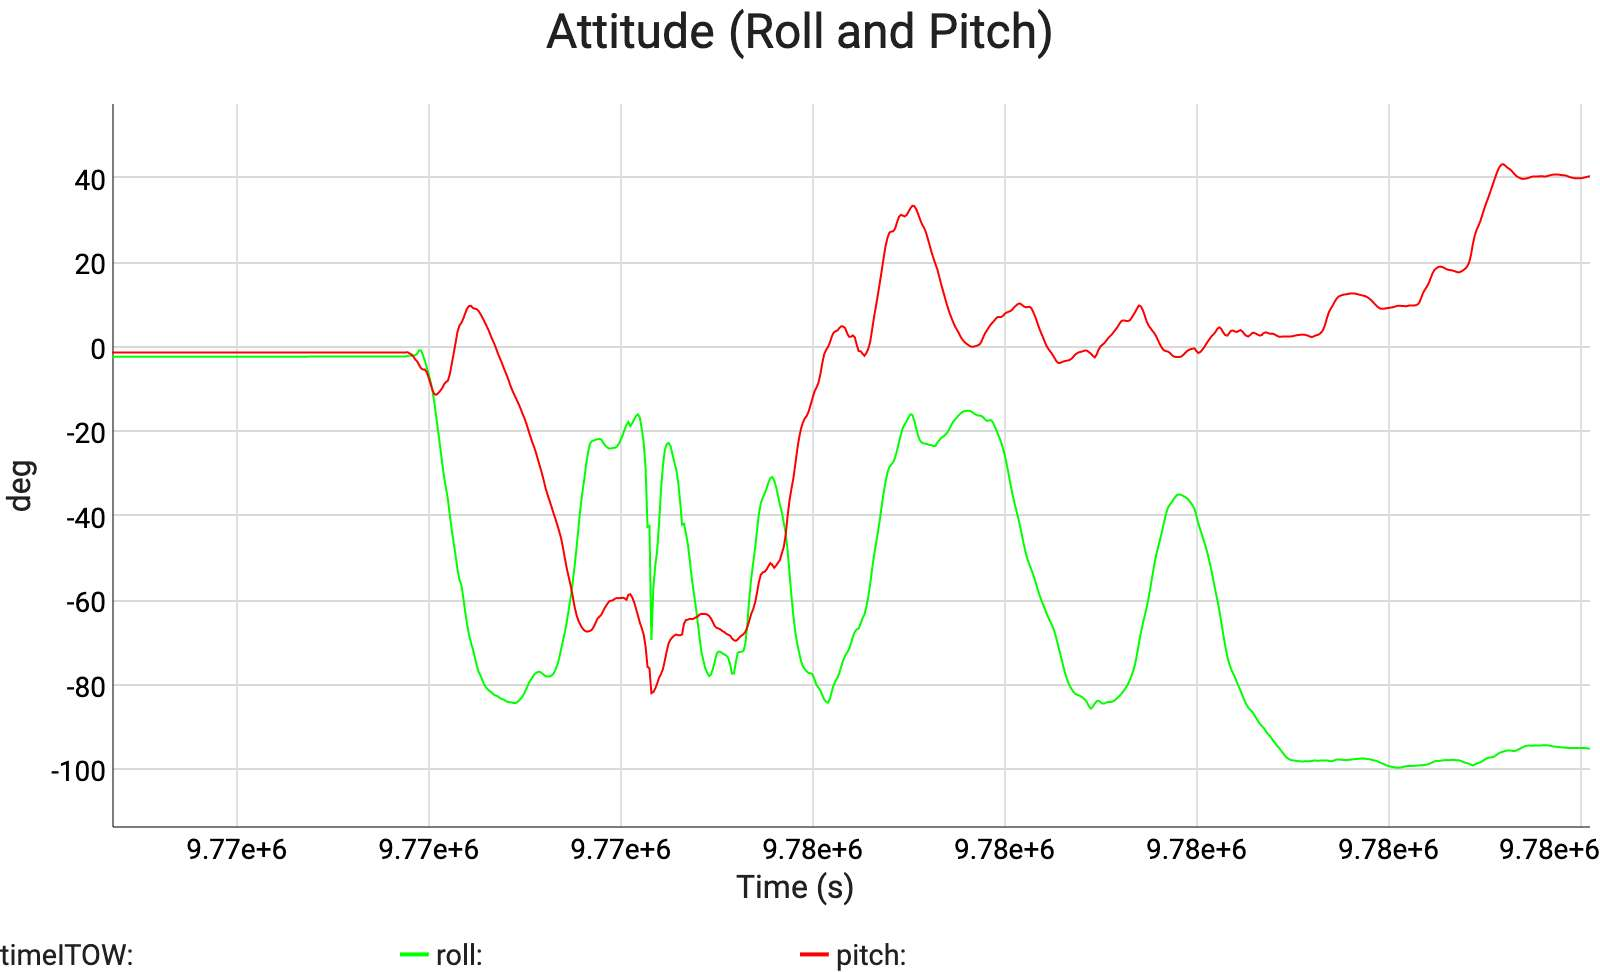 Attitude (Roll and Pitch)